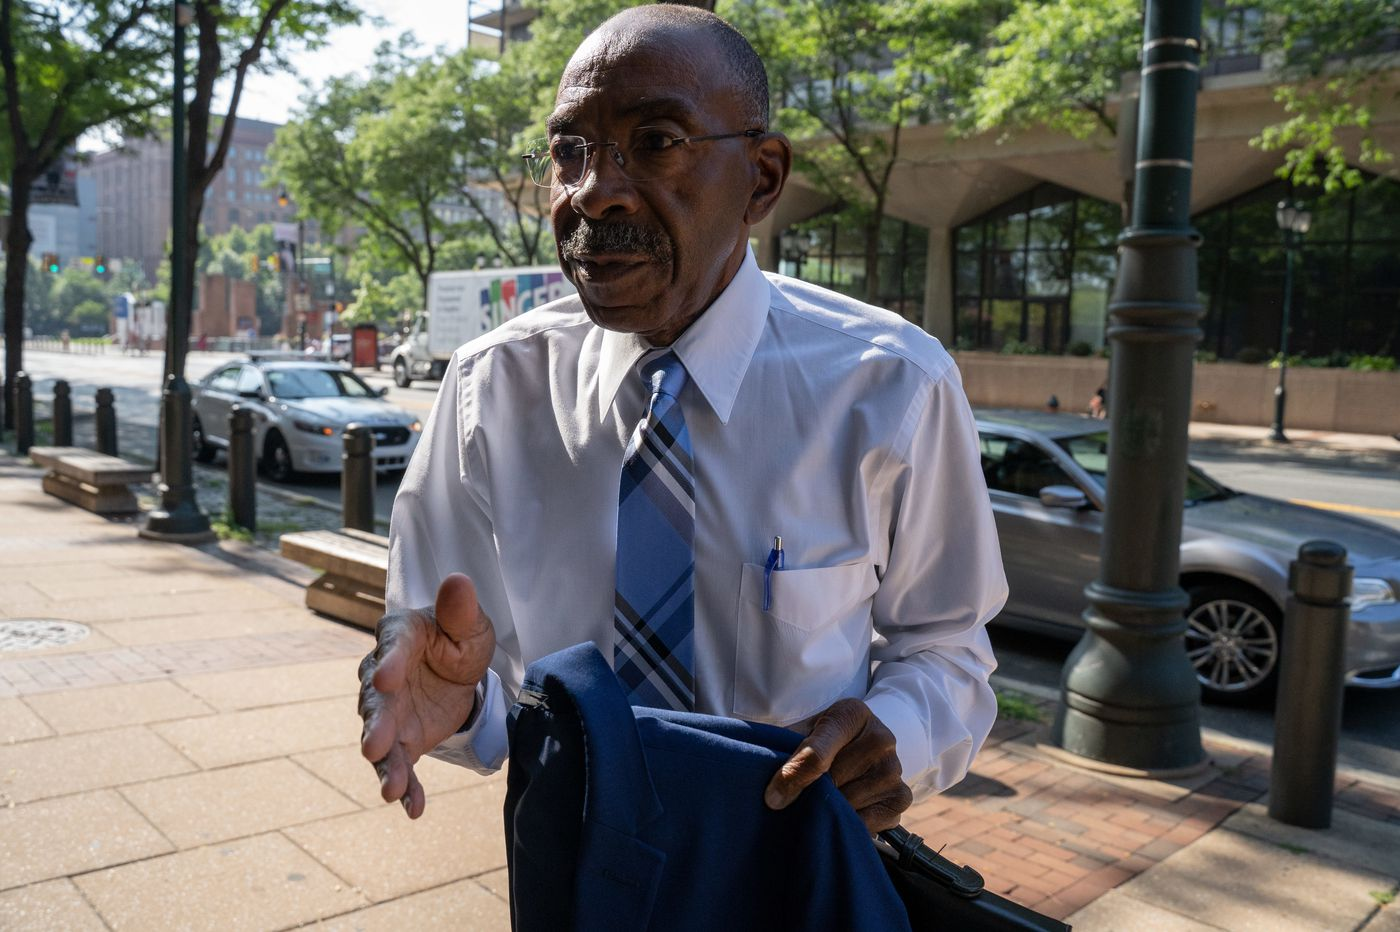 Longest-serving Philly sheriff is sentenced to 5 years in prison for $675K bribery scheme